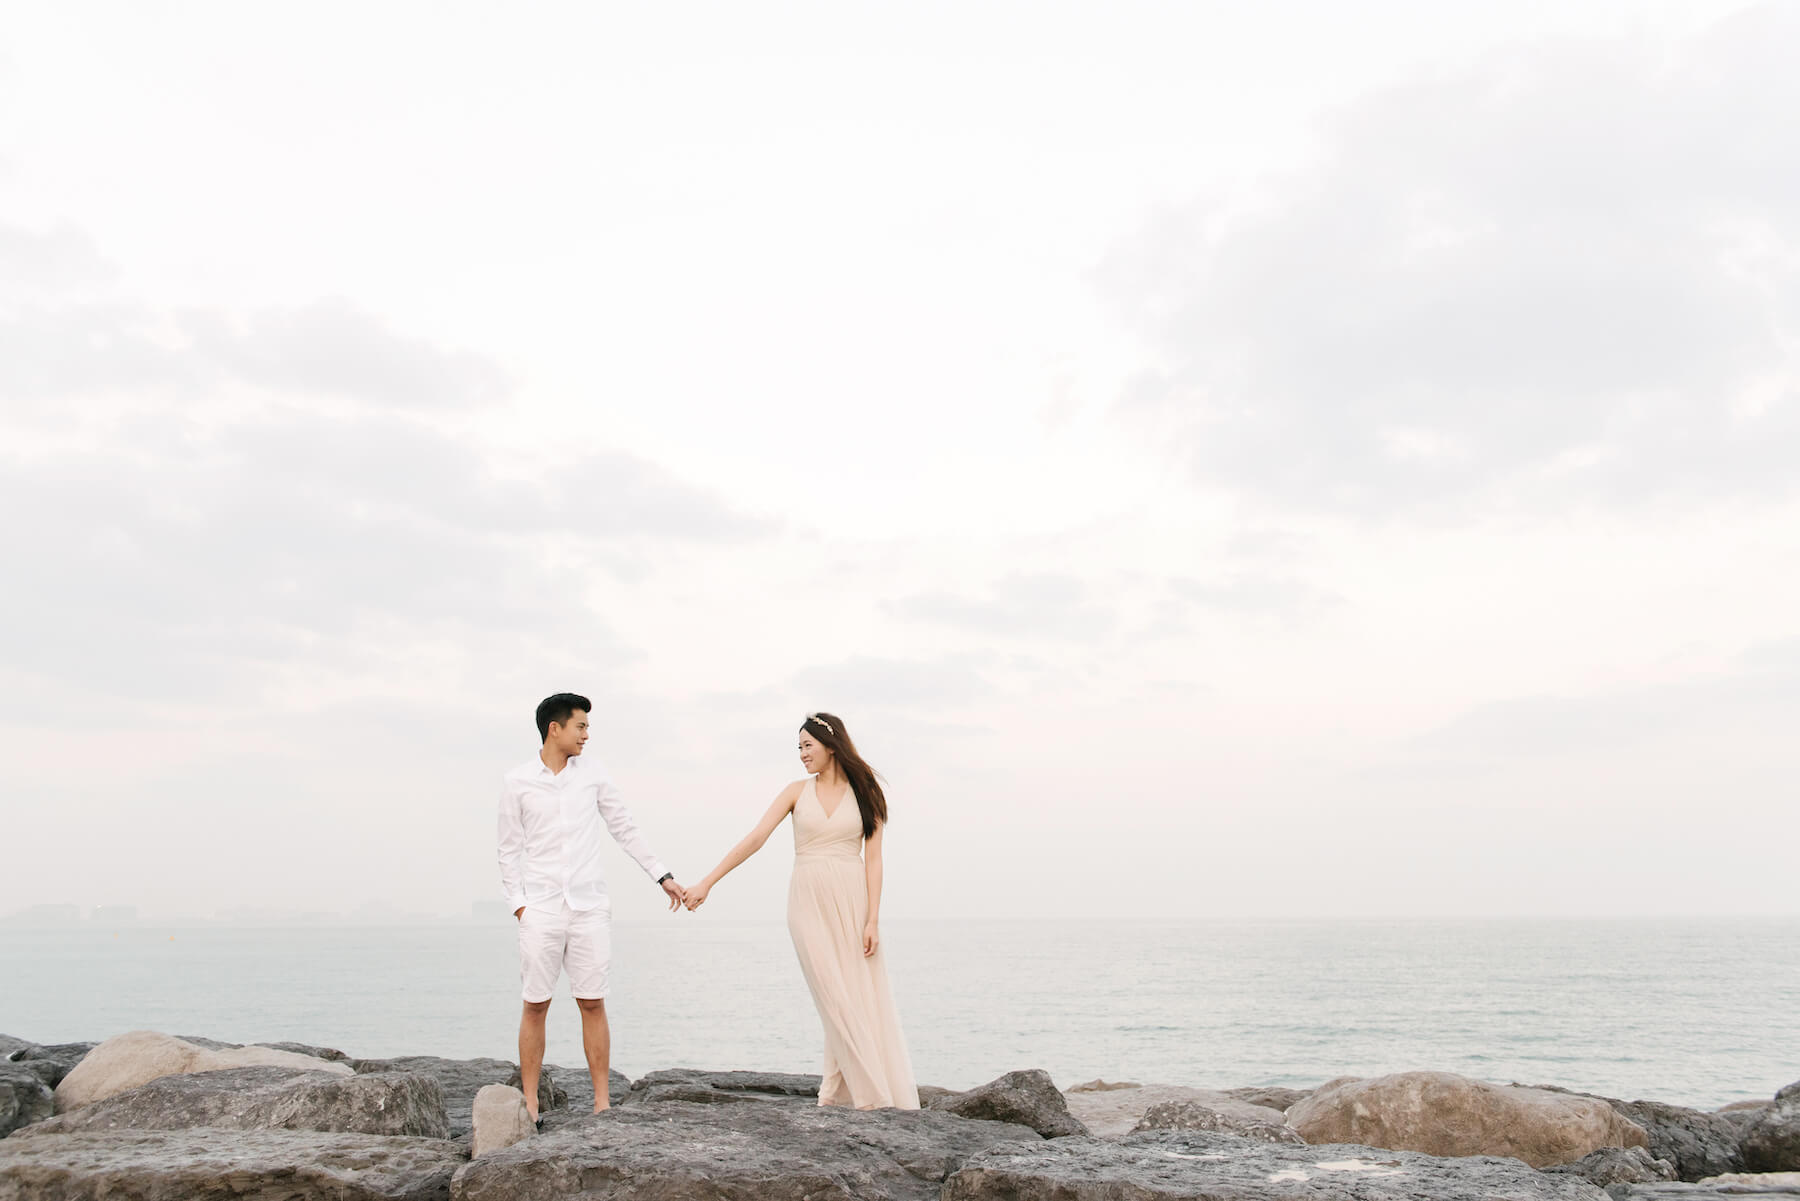 Couple holding hands and standing on rocks by the water on a couples trip in Dubai